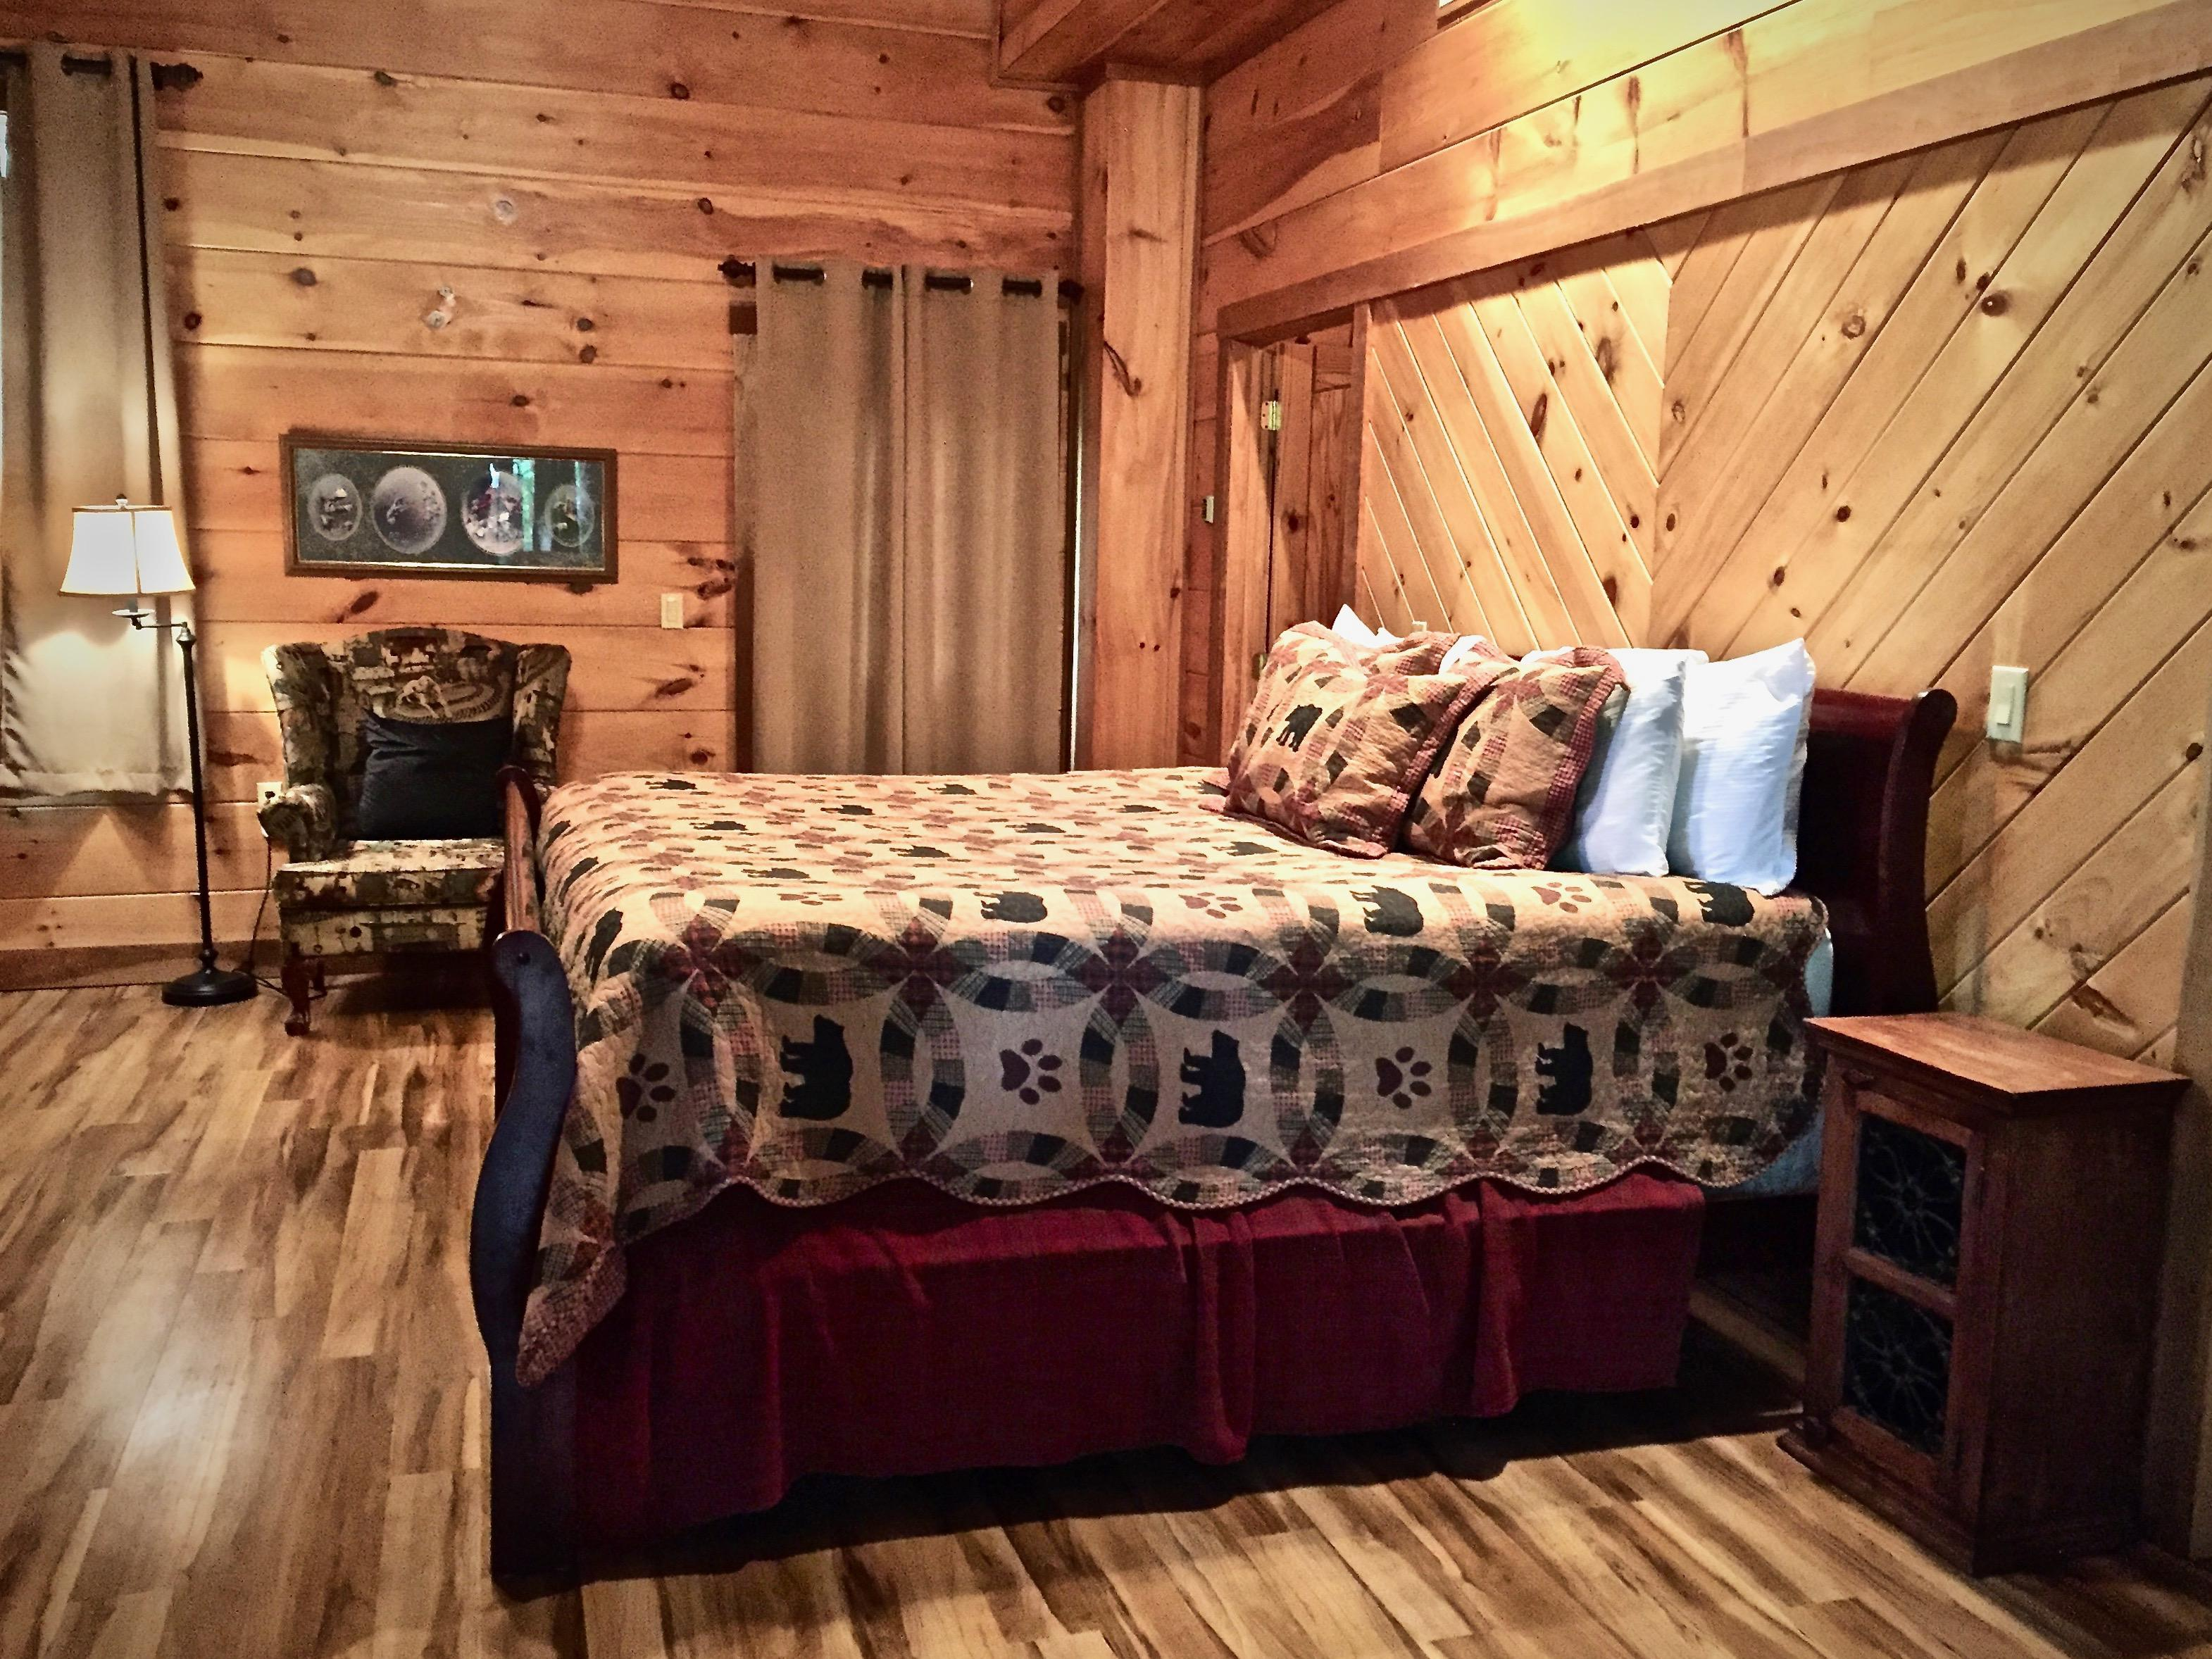 King Suite offers a third Flat Screen TV, access to the Hot Tub Deck, Fire Pit, Media Room